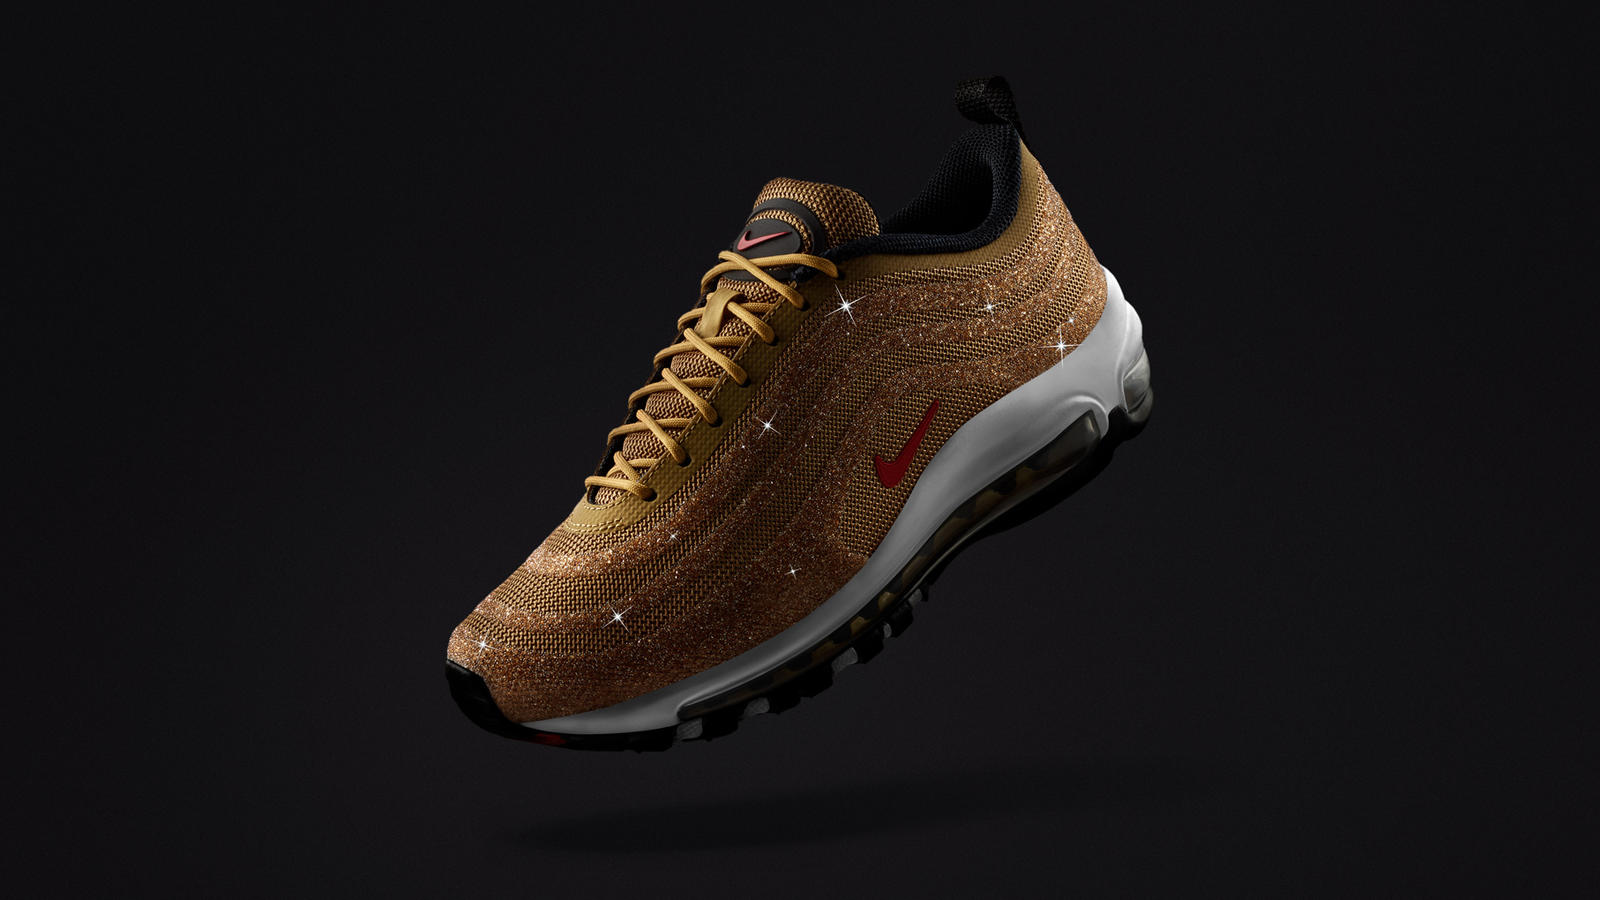 Nike Air Max 97 Gold Swarovski® Crystal - Nike News f2643b871c0a